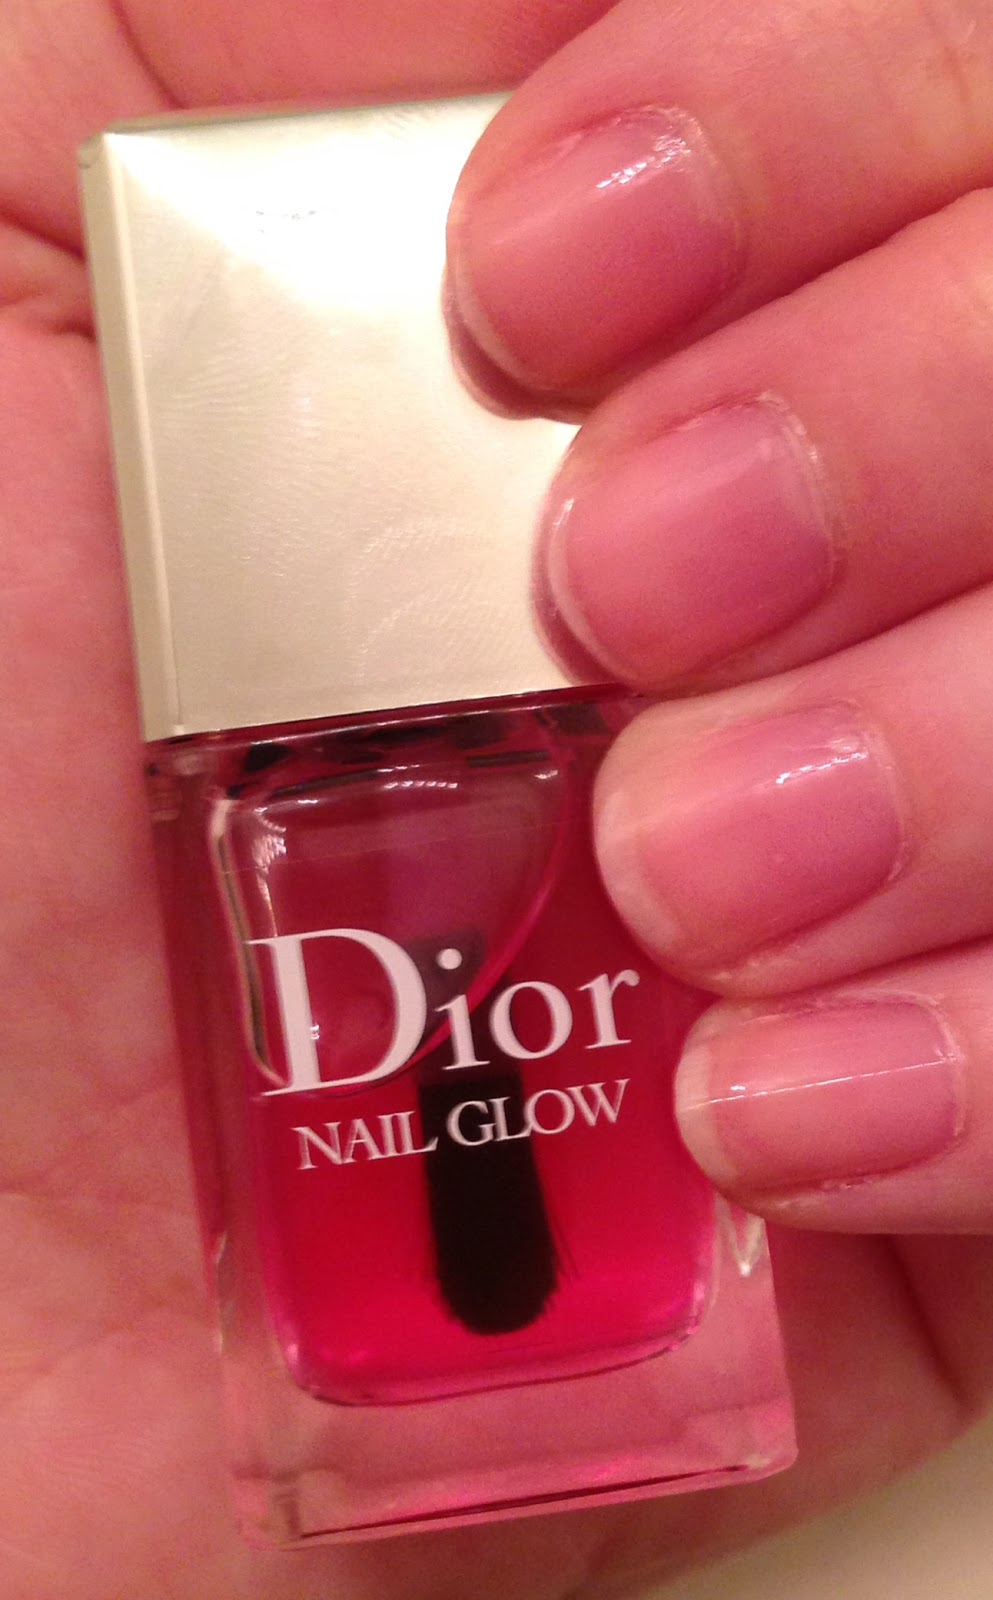 The Beauty of Life  Glow On  Dior Nail Glow 0d28f4e39a7